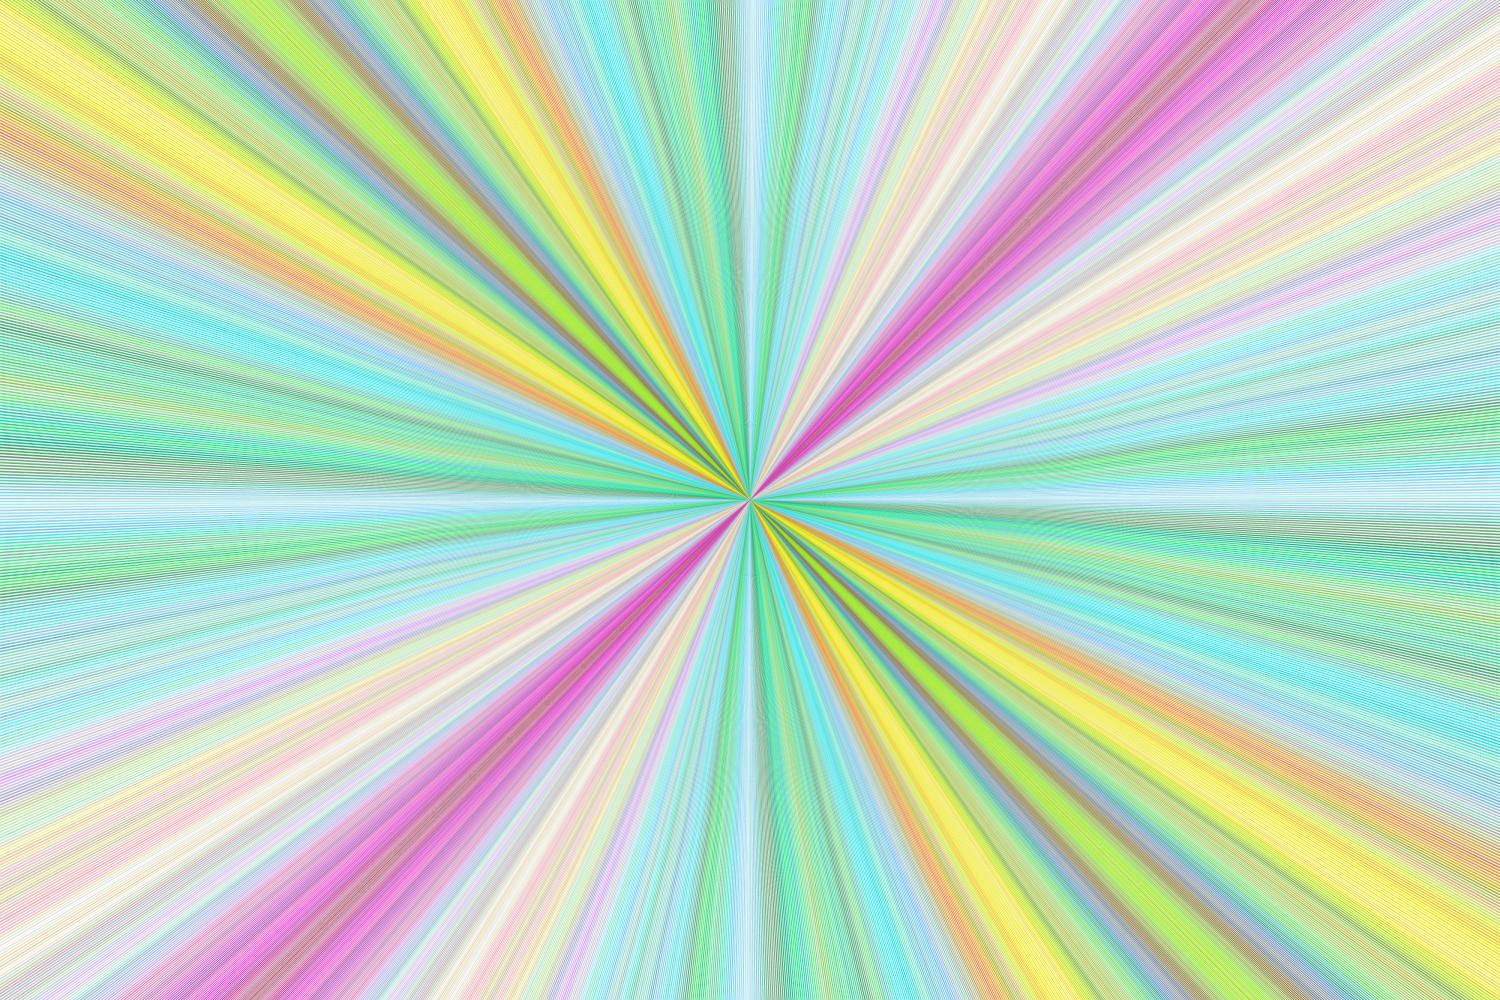 Download Free Colorful Ray Burst Background Graphic By Davidzydd Creative for Cricut Explore, Silhouette and other cutting machines.